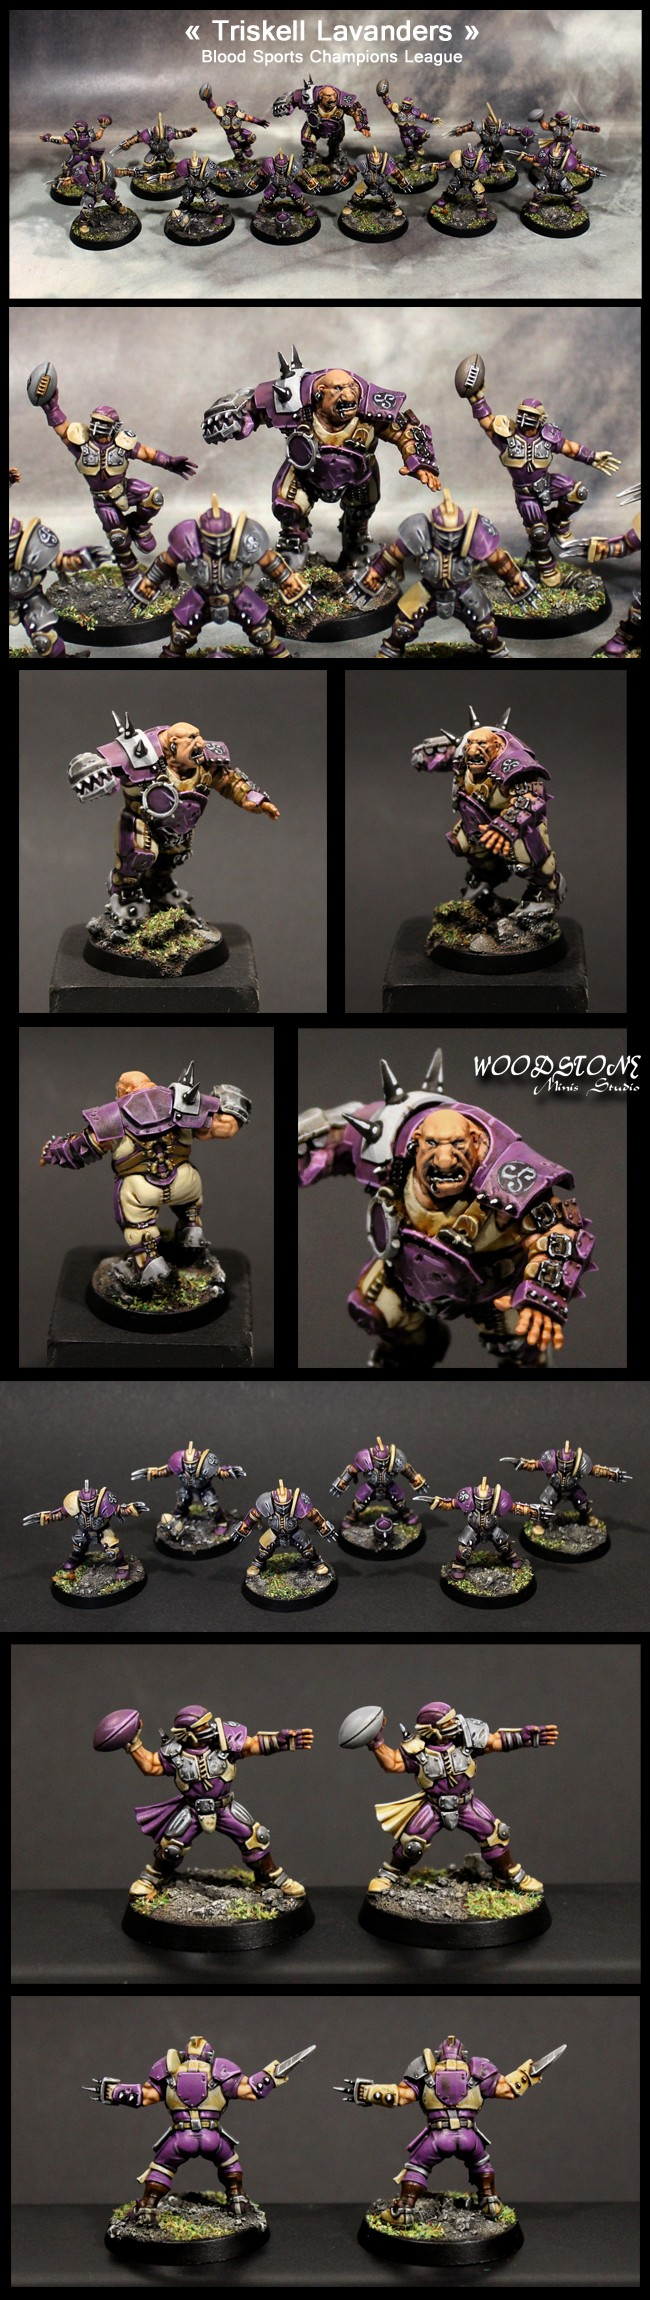 Blood Bowl Triskell Lavanders.